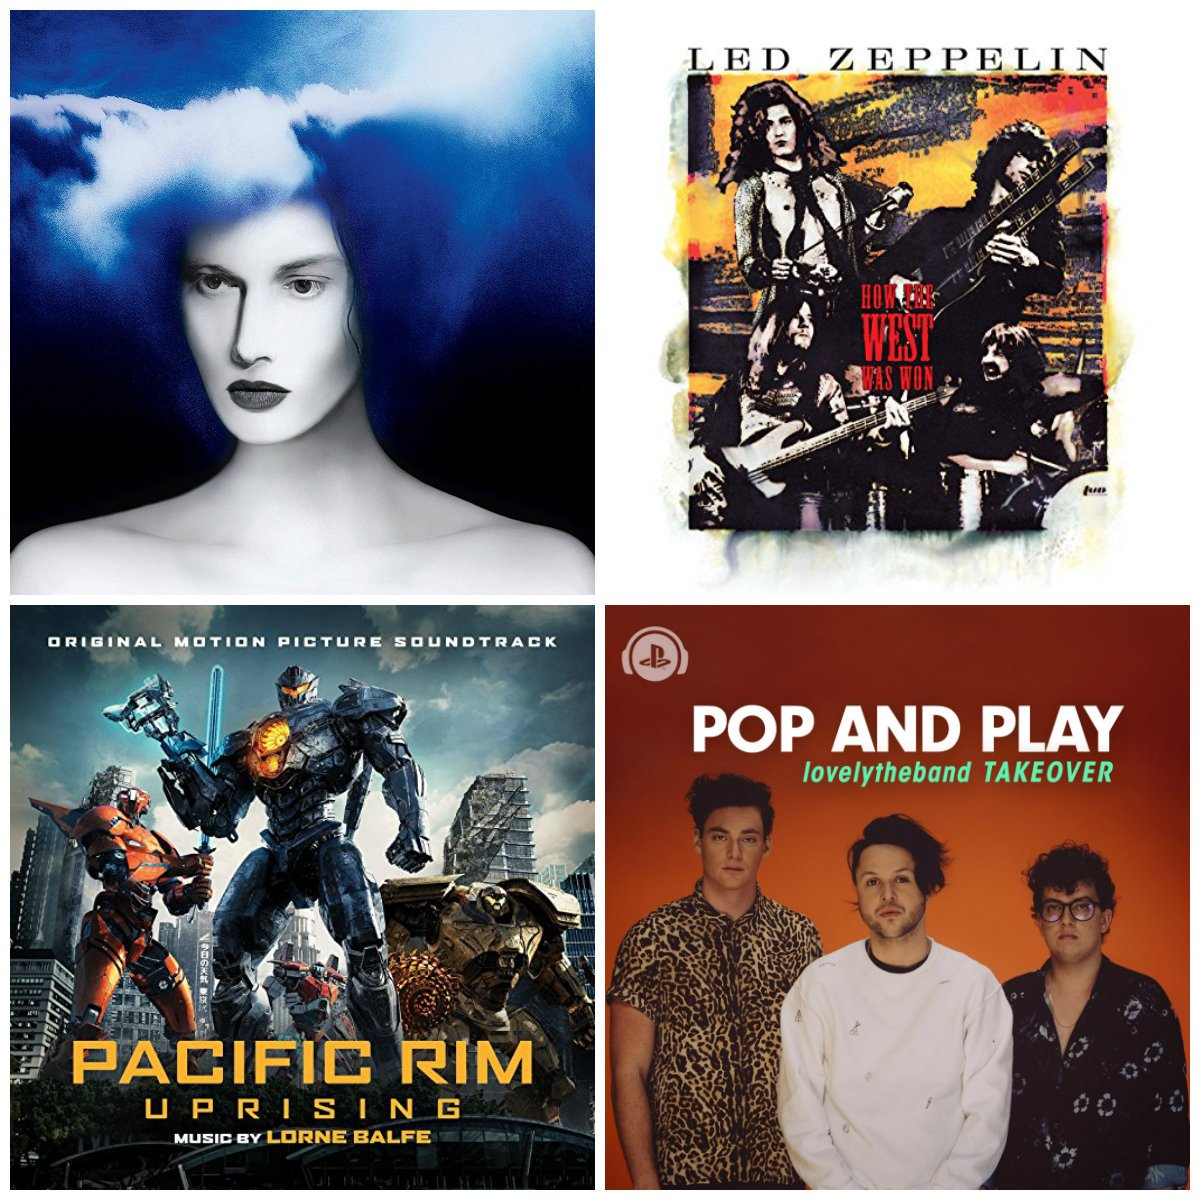 PS Music Recommends: New music from Jack White, the Pacific Rim Uprising Original Motion Picture Soundtrack, Led Zeppelin (Remastered) and more - streaming now on Spotify. Listen here: https://t.co/h8War2UXru